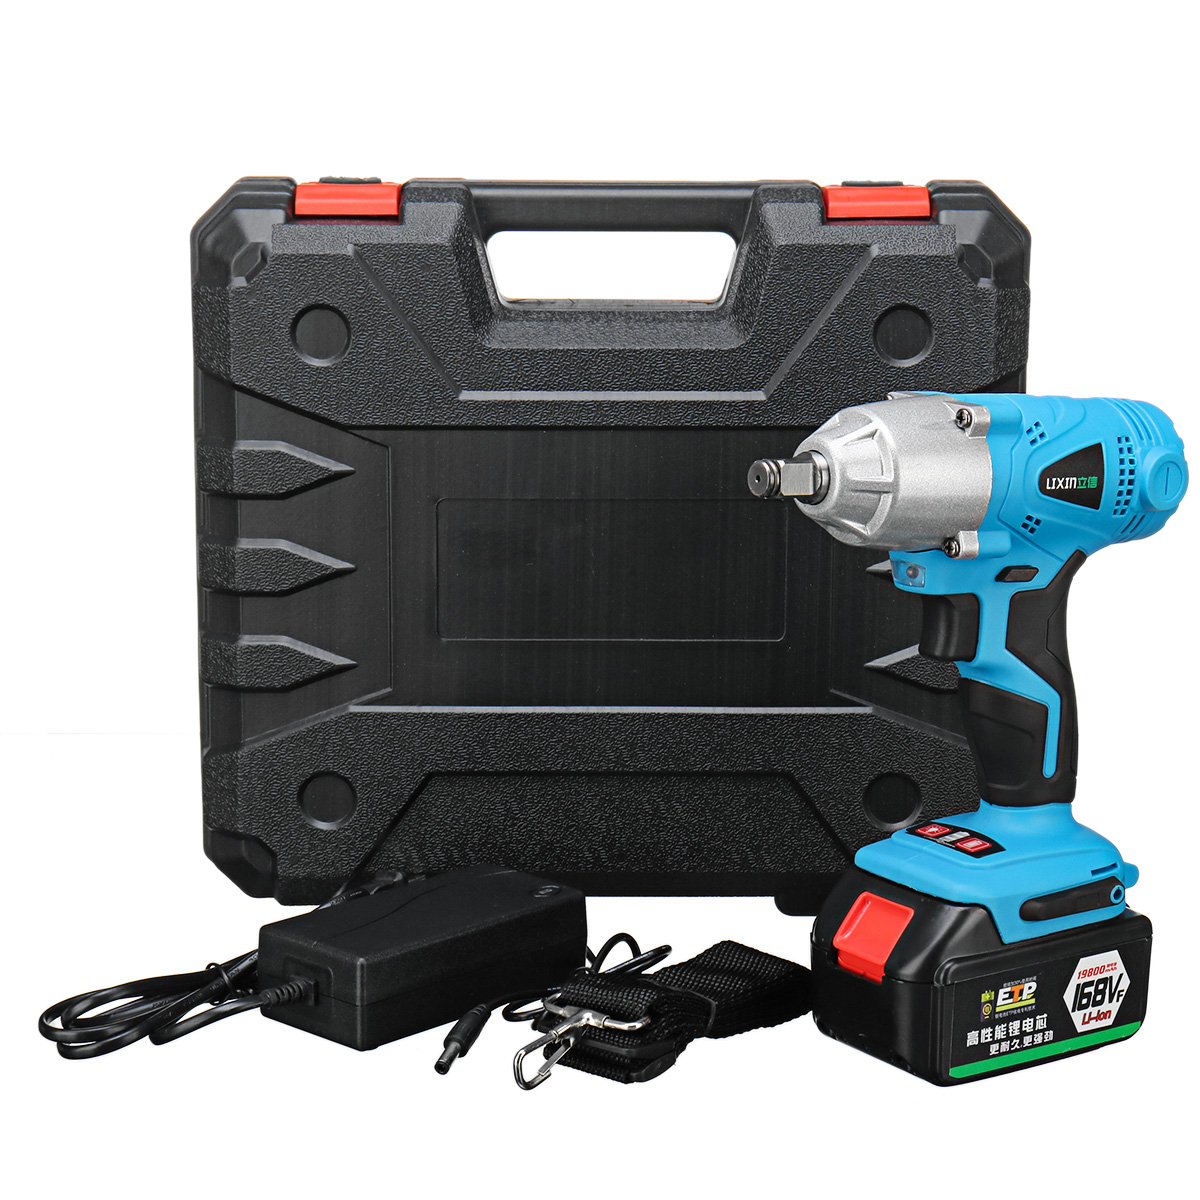 19800mAh Electric Wrench Impact Drill Socket LED Light 1/2 Chuck Wrench Li-on Battery Car Wrench Tire Power Tools19800mAh Electric Wrench Impact Drill Socket LED Light 1/2 Chuck Wrench Li-on Battery Car Wrench Tire Power Tools